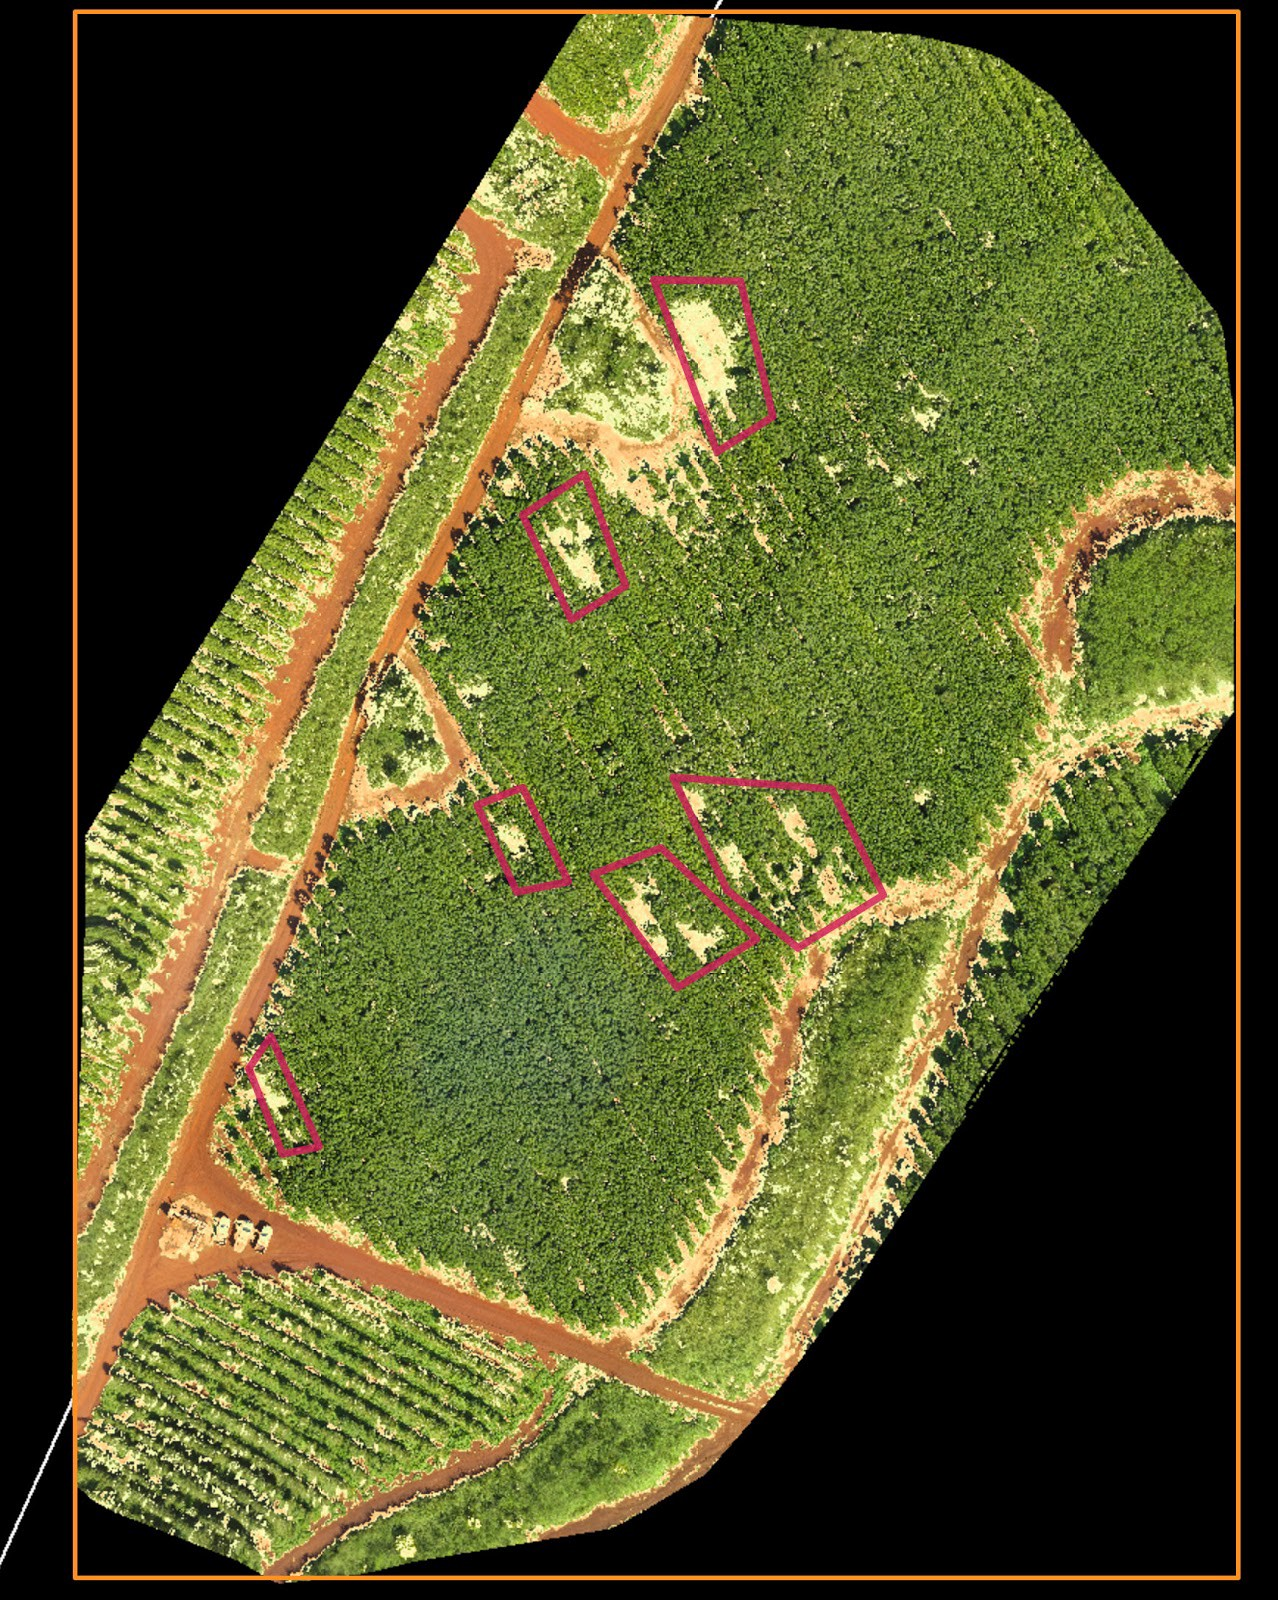 Drones Help Coffee Grower Evaluate Crop Health 85% Faster Than Manned Aircraft